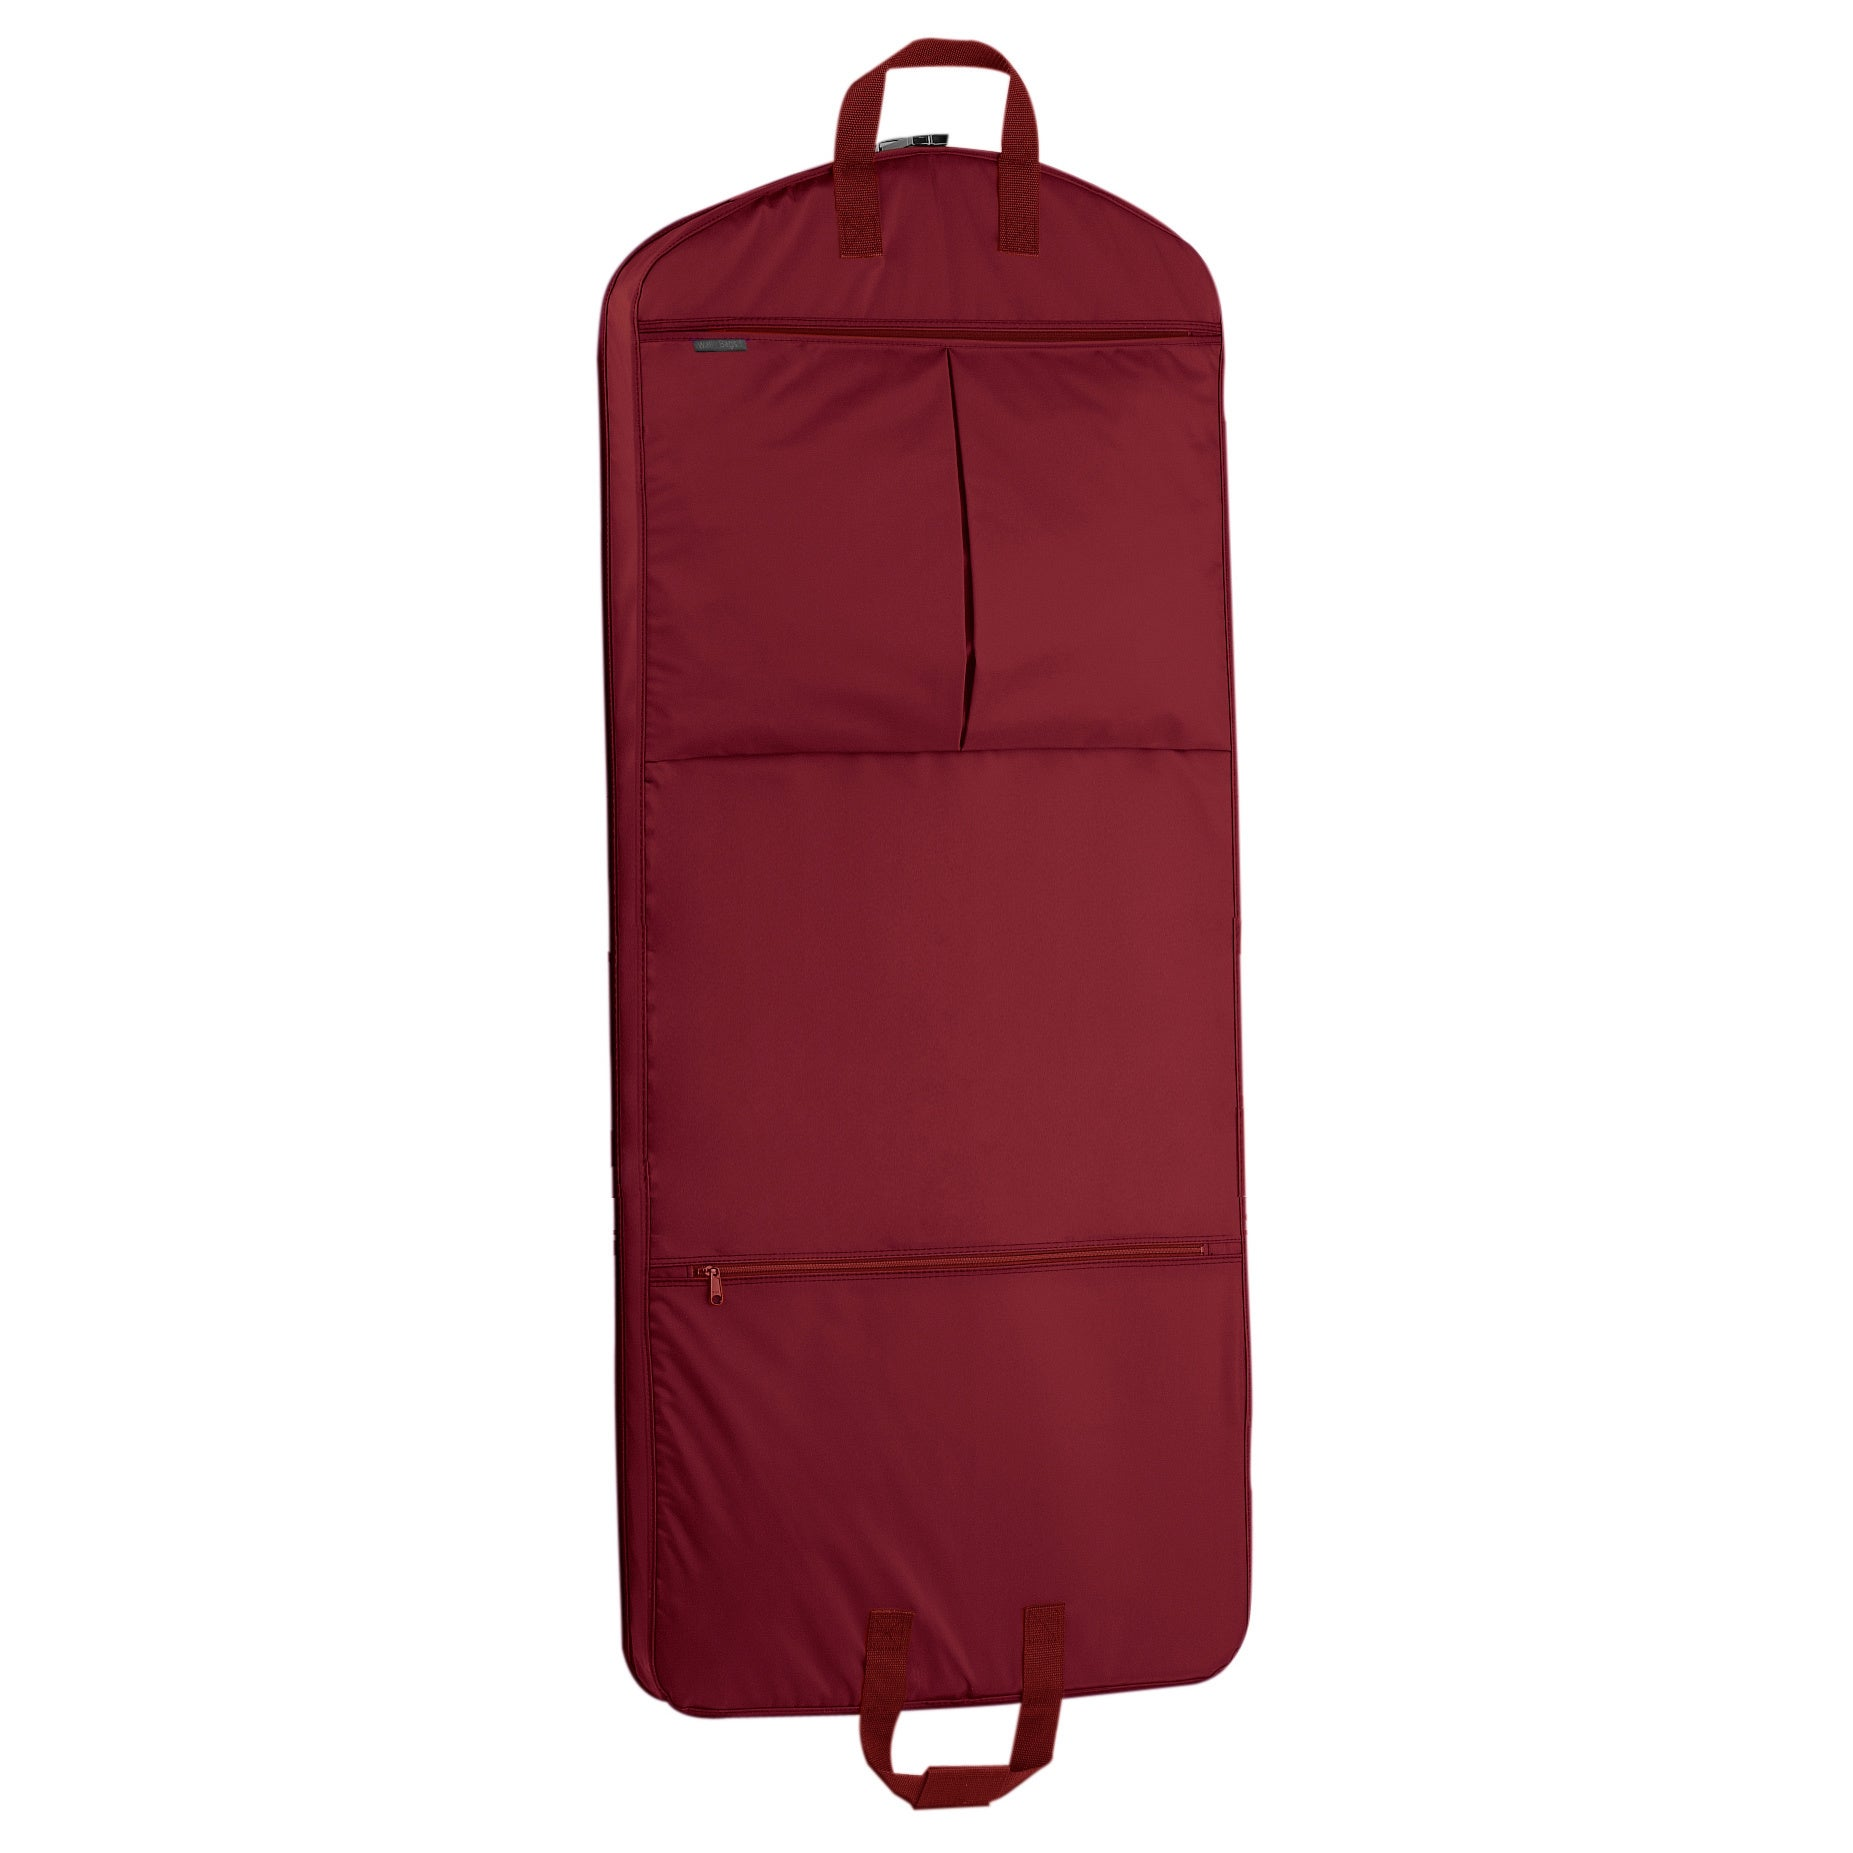 Garment Bags | Find Great Luggage Deals Shopping at Overstock.com